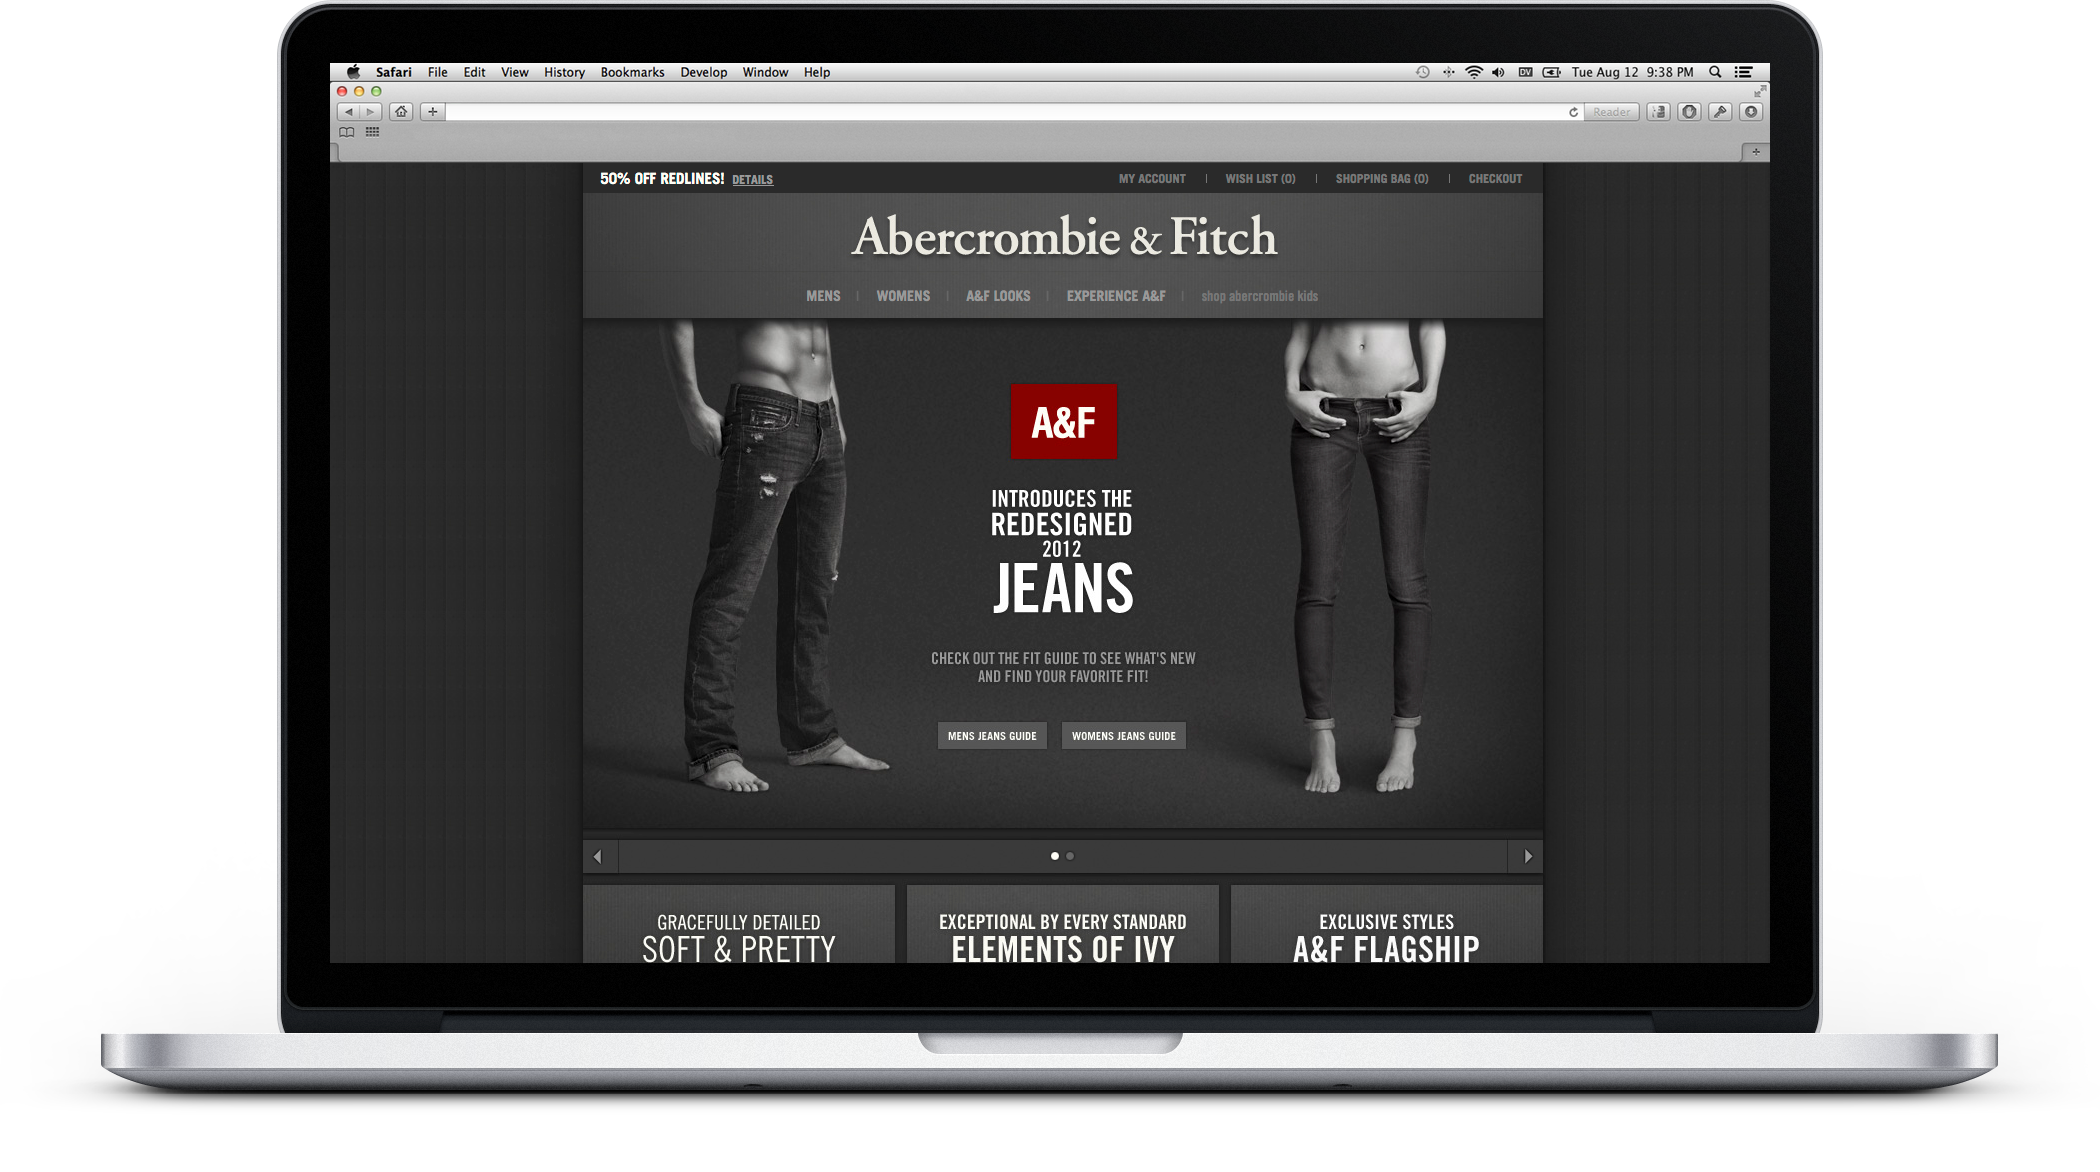 Abercrombie & Fitch products displayed on various devices (laptop, tablet, phone, etc.).